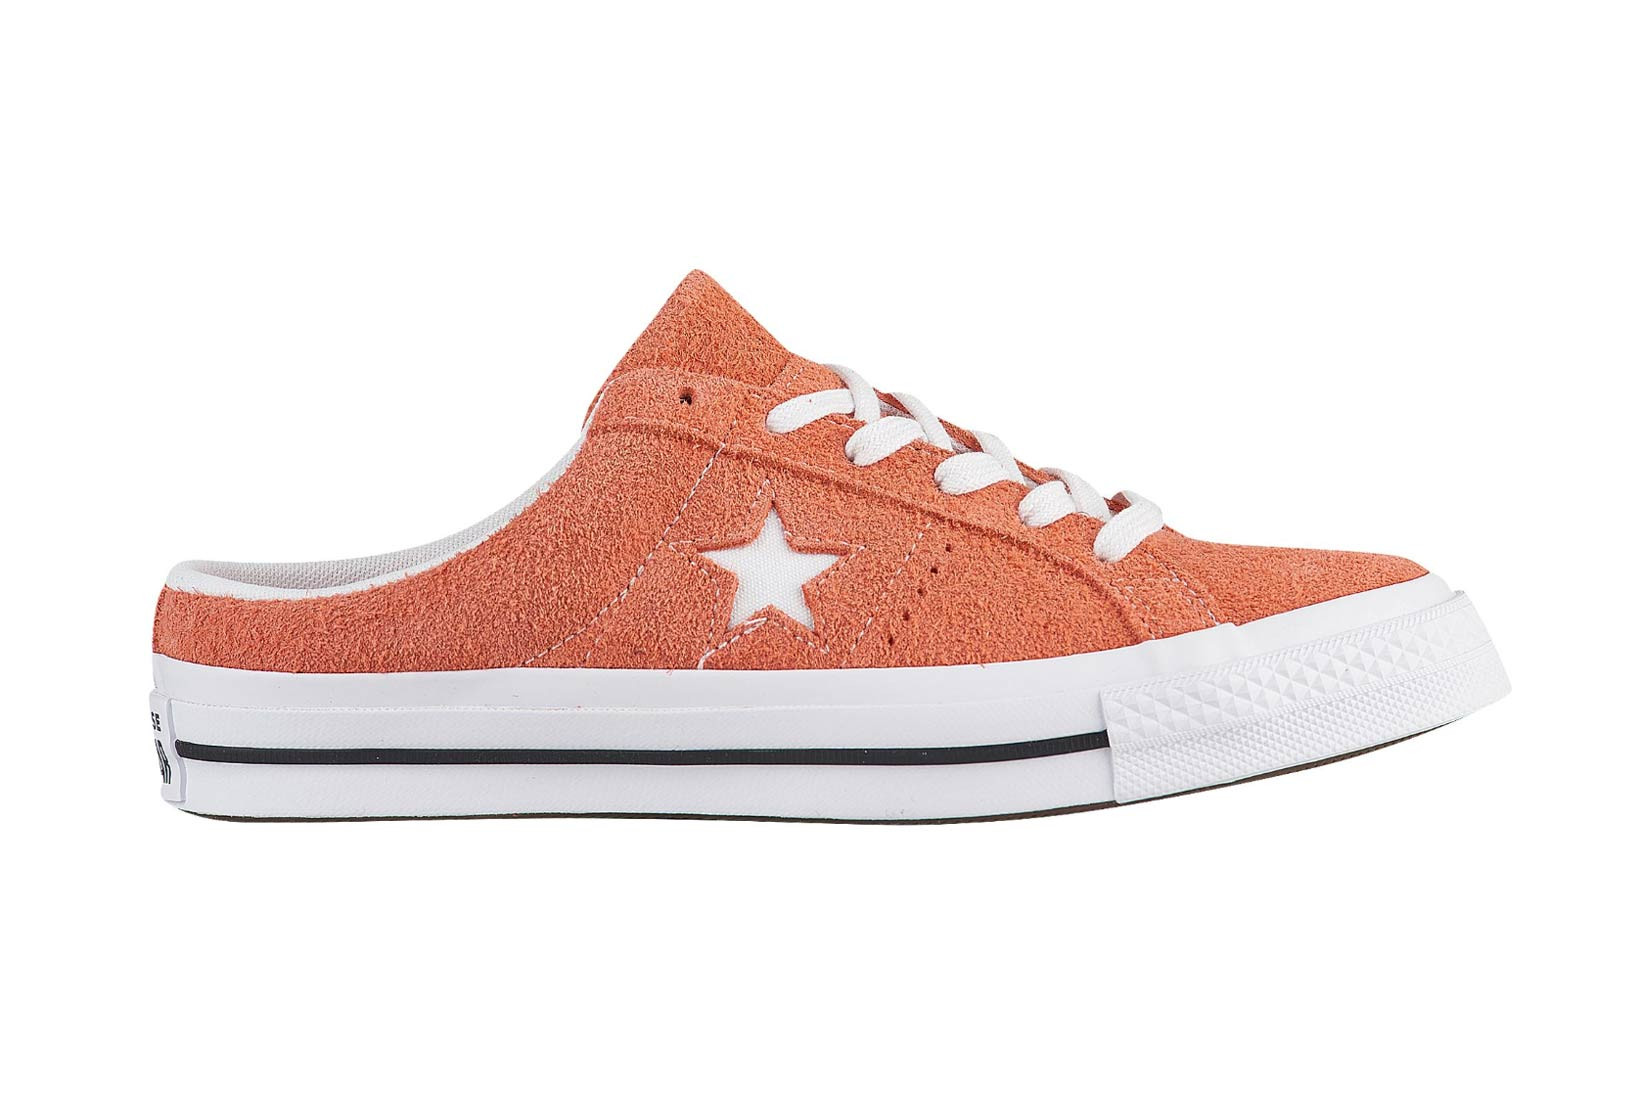 Converse's One Star Mule in Black and